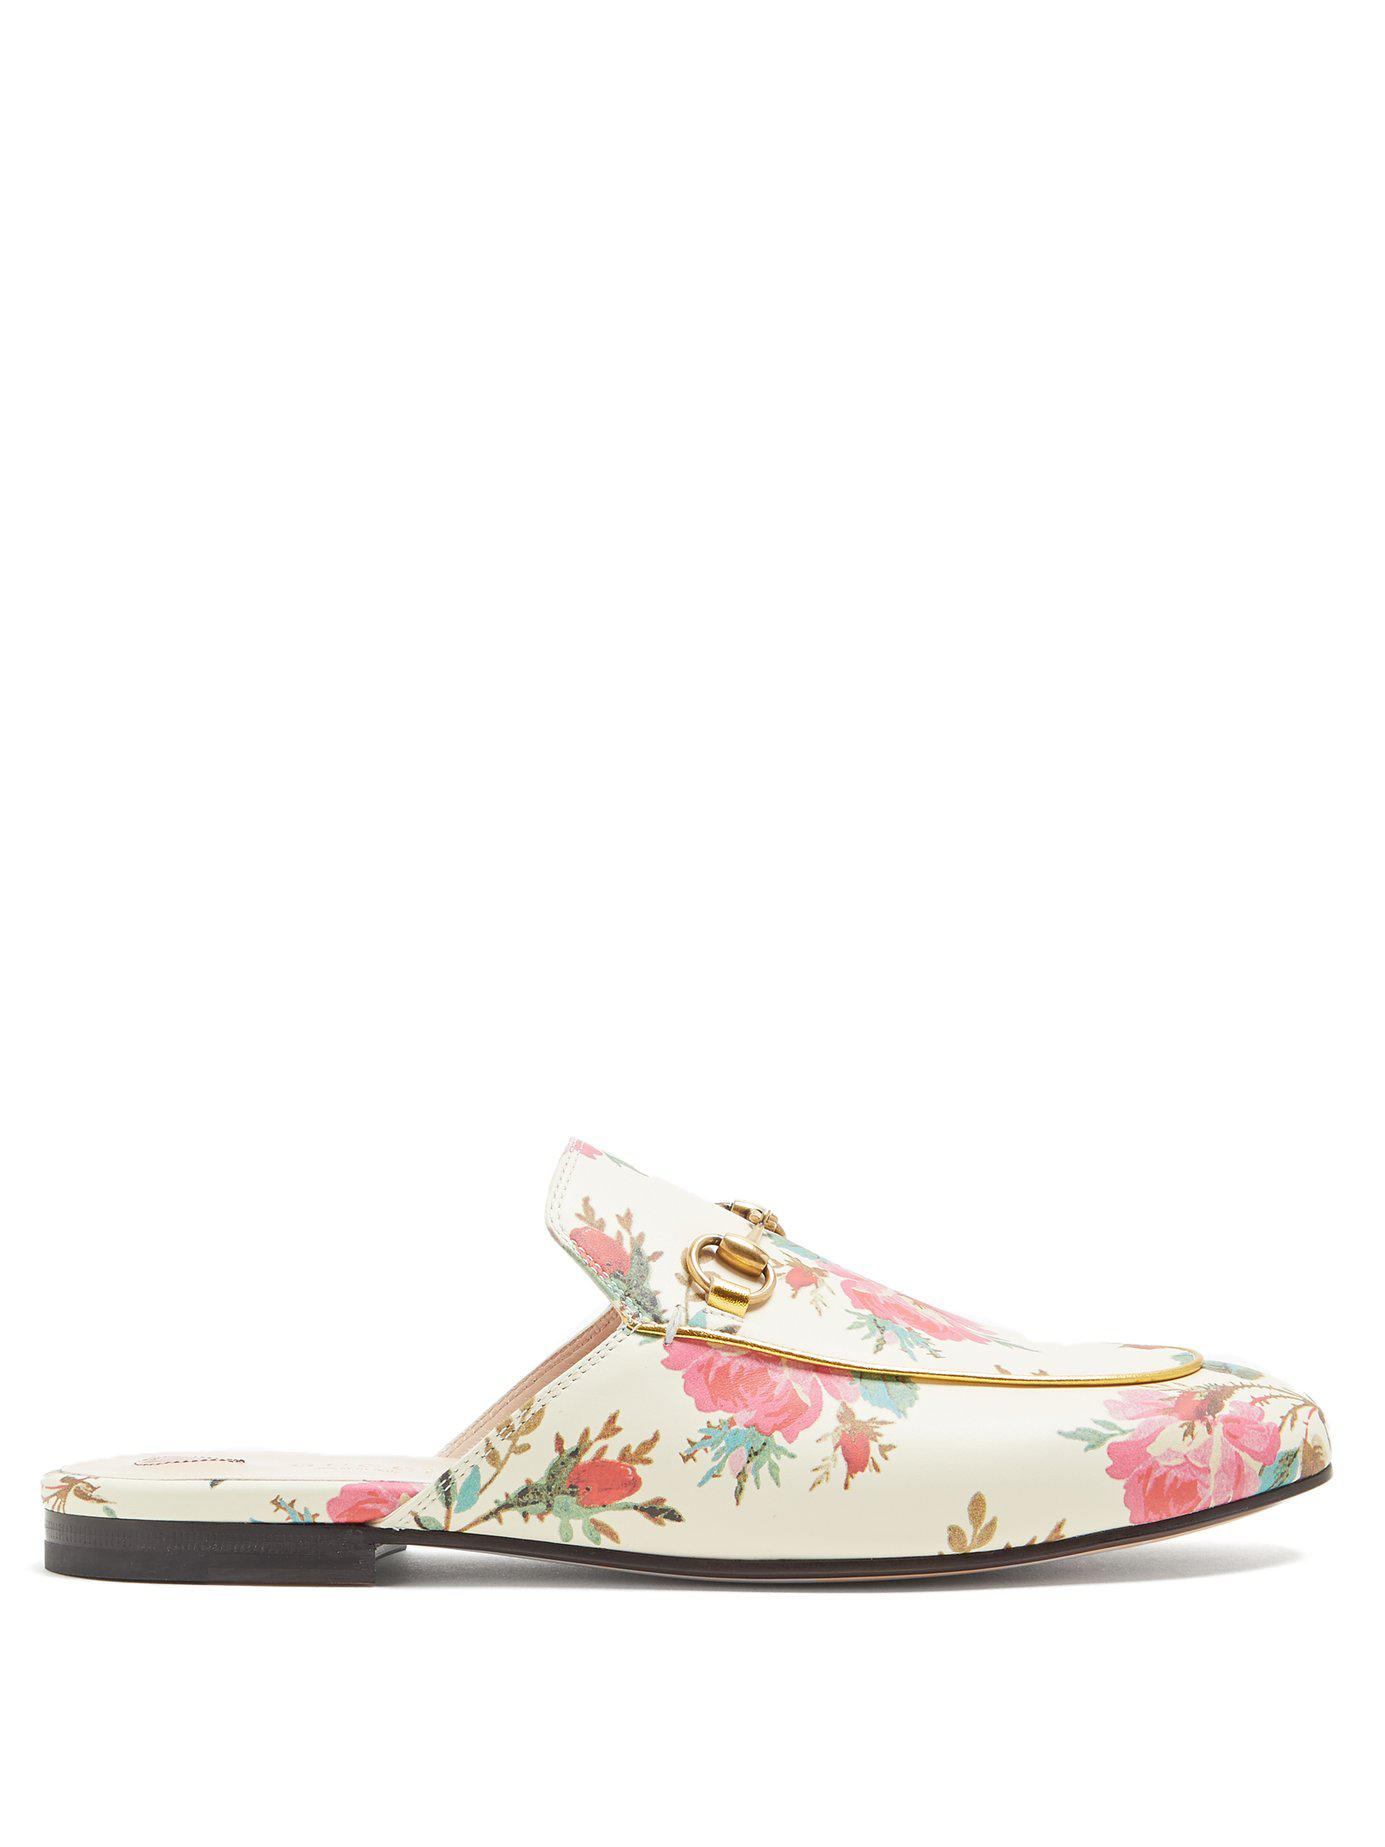 5343550d659 Lyst - Gucci Princetown Floral-print Backless Loafers